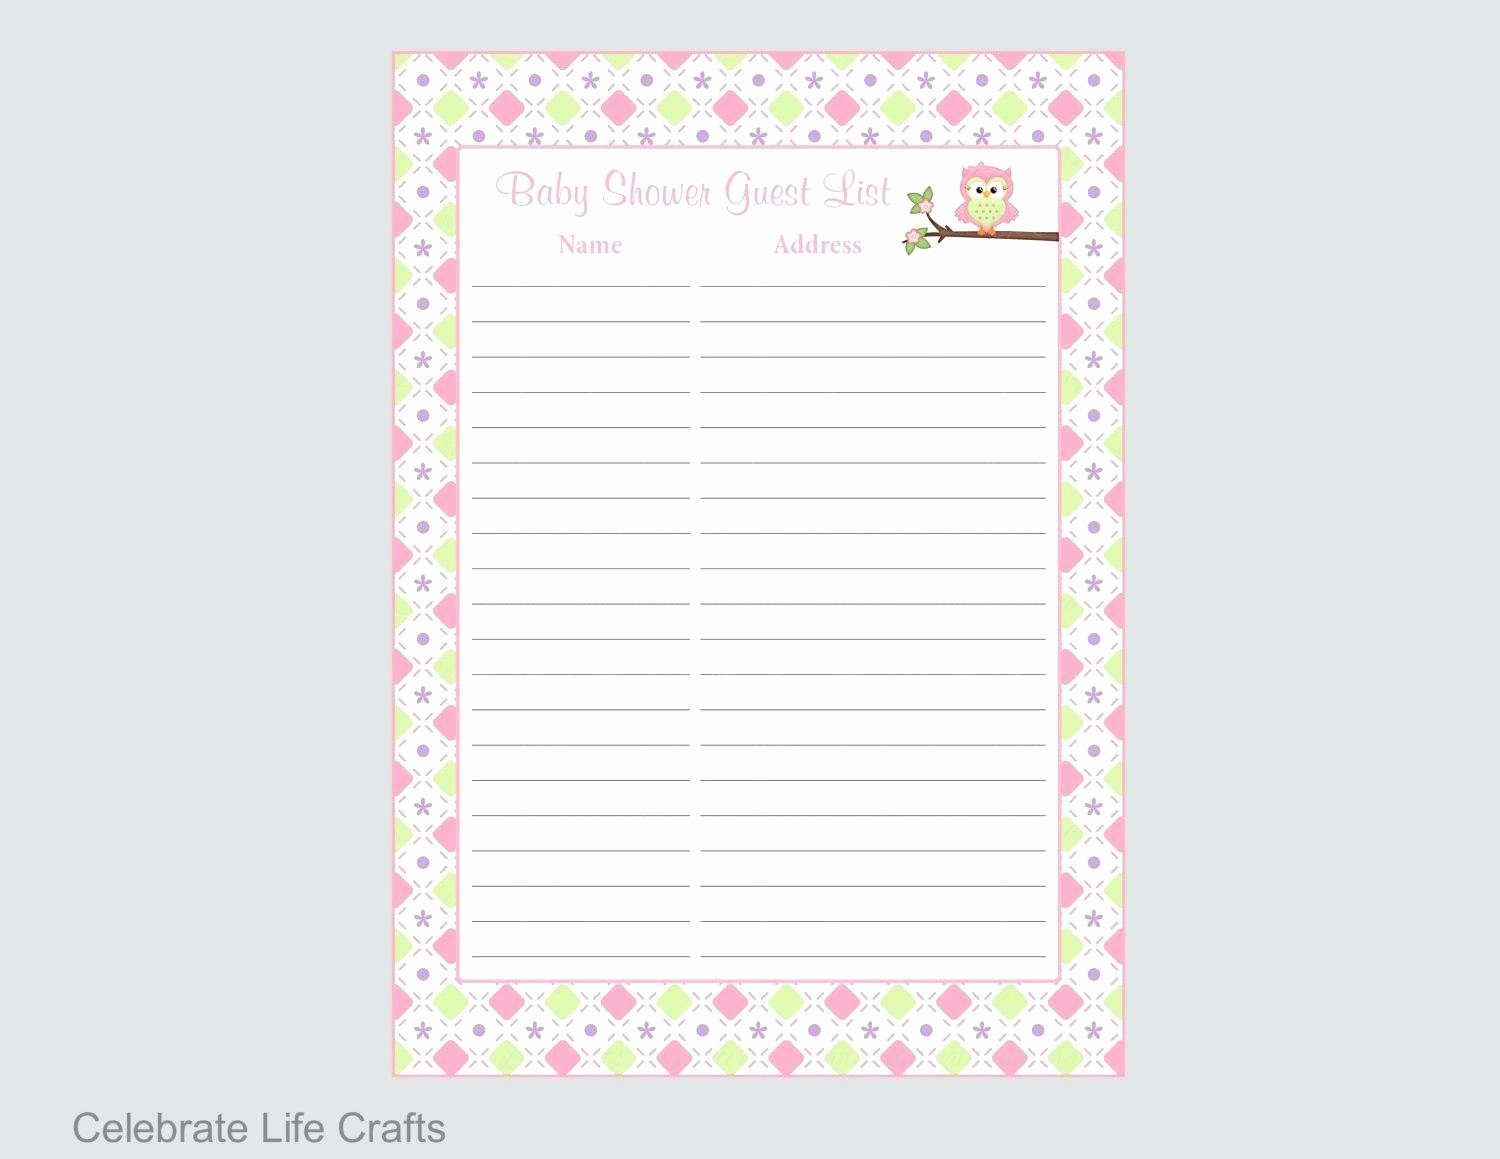 Bridal Shower Gift List Sheet New Bridal Shower Gift Record Template Template